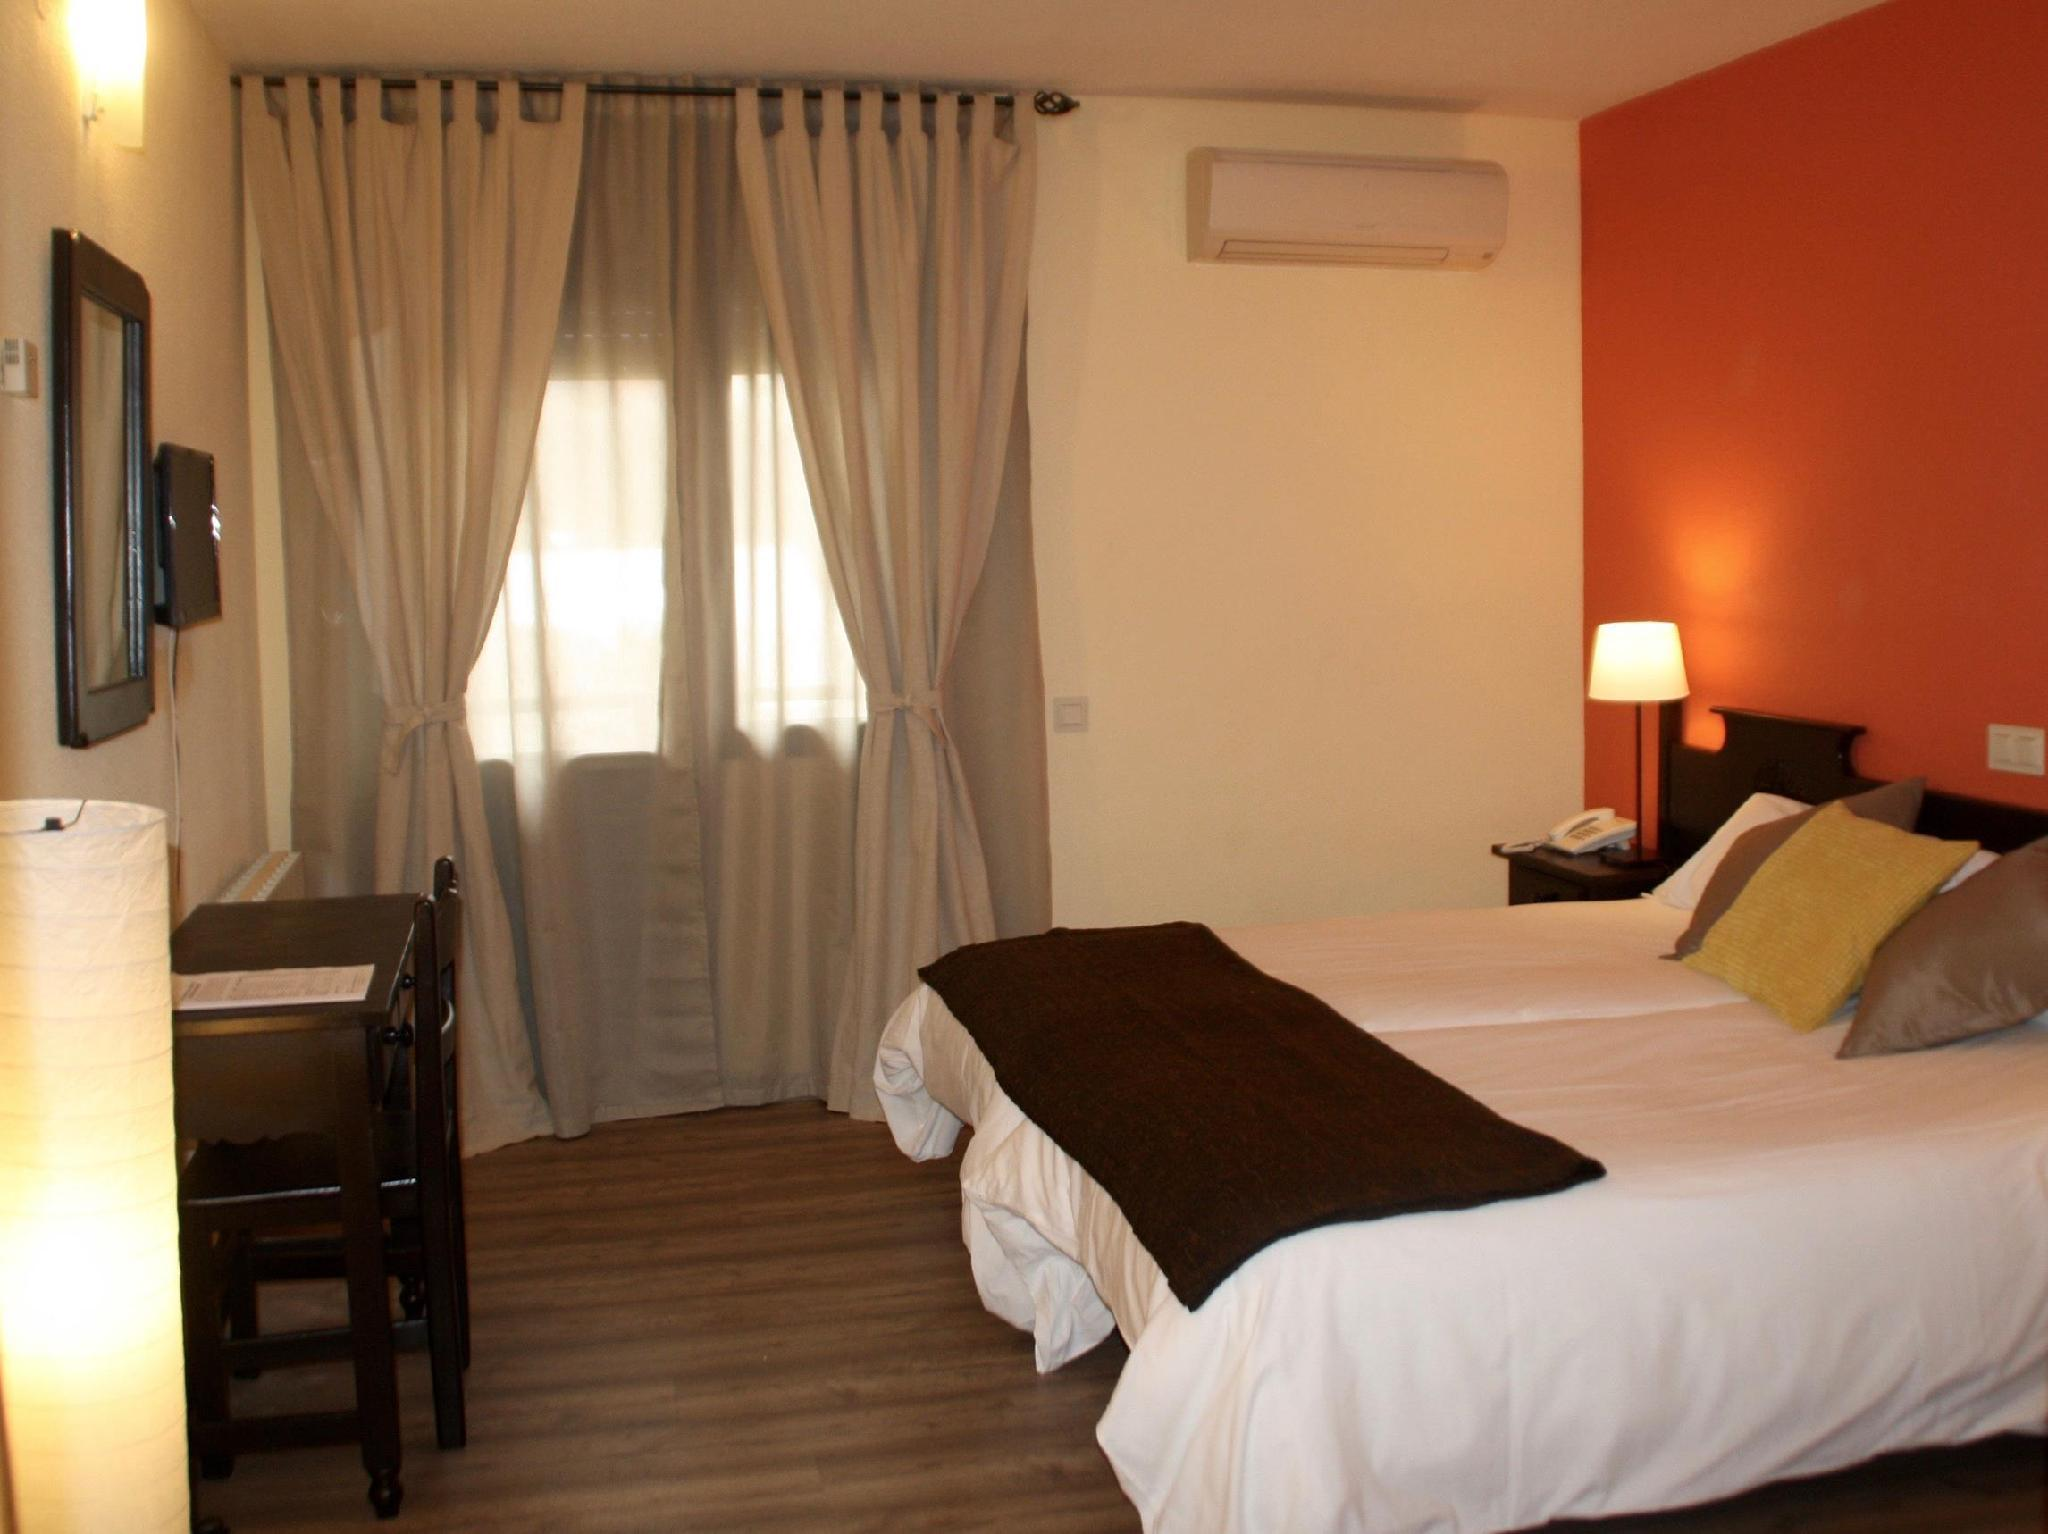 deals on complejo hostelero venta magullo in segovia promotional rh agoda com